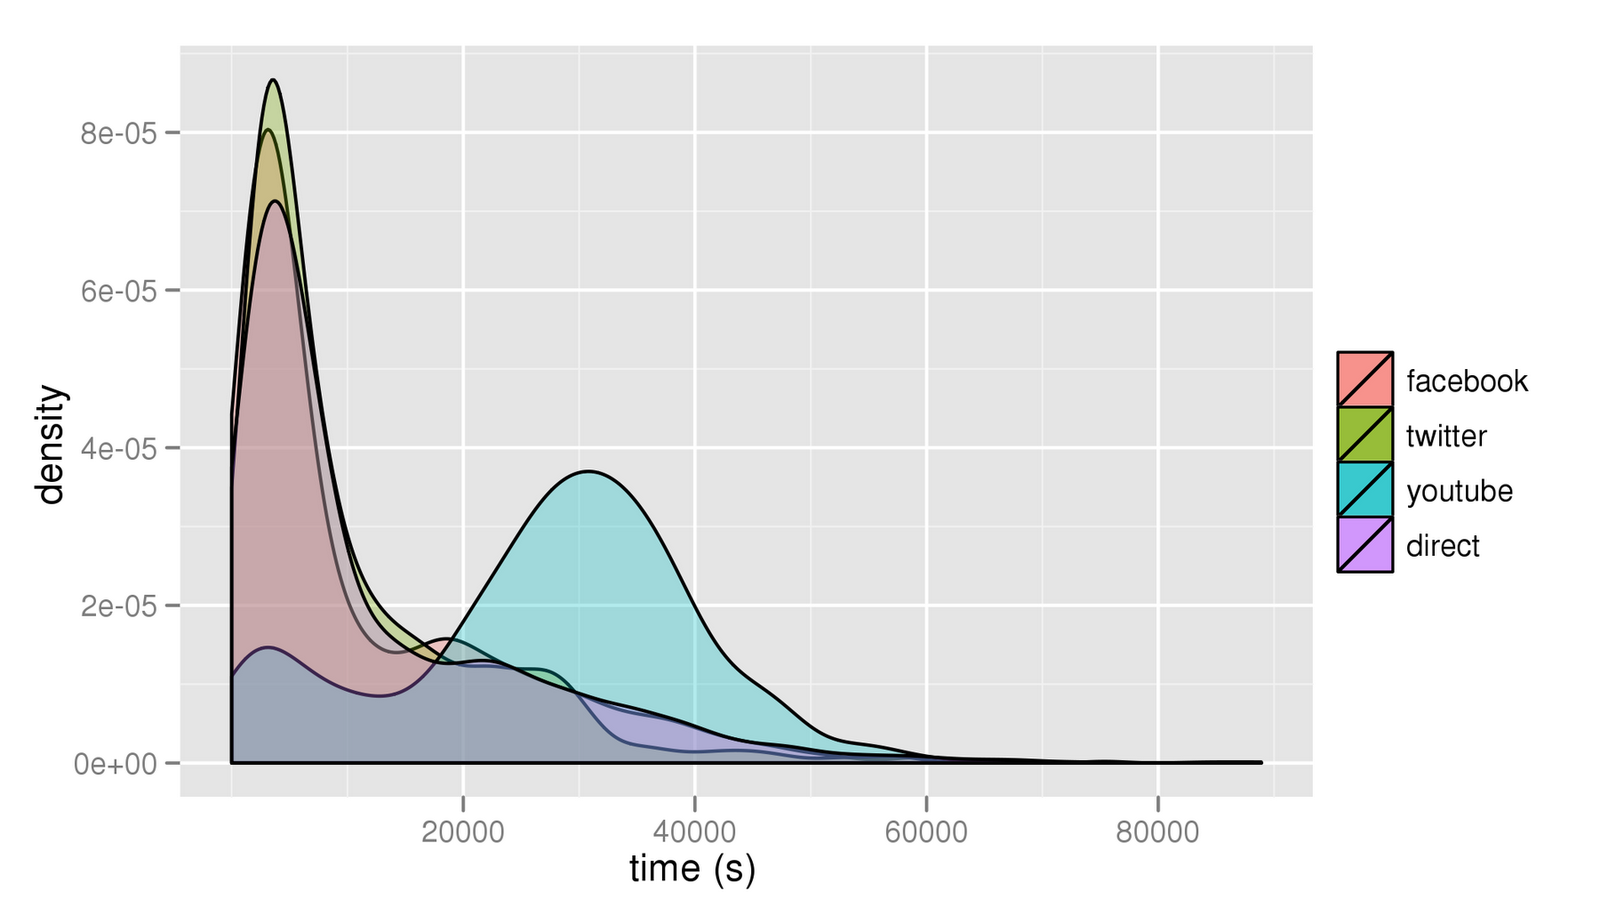 Bit.ly: Lifespan of Links in Social Media. Distribution of half-lifes over four different referrer types. Facebook, twitter and direct link (links shared via email, instant messengers etc.) half lifes follow a strikingly similar distribution.